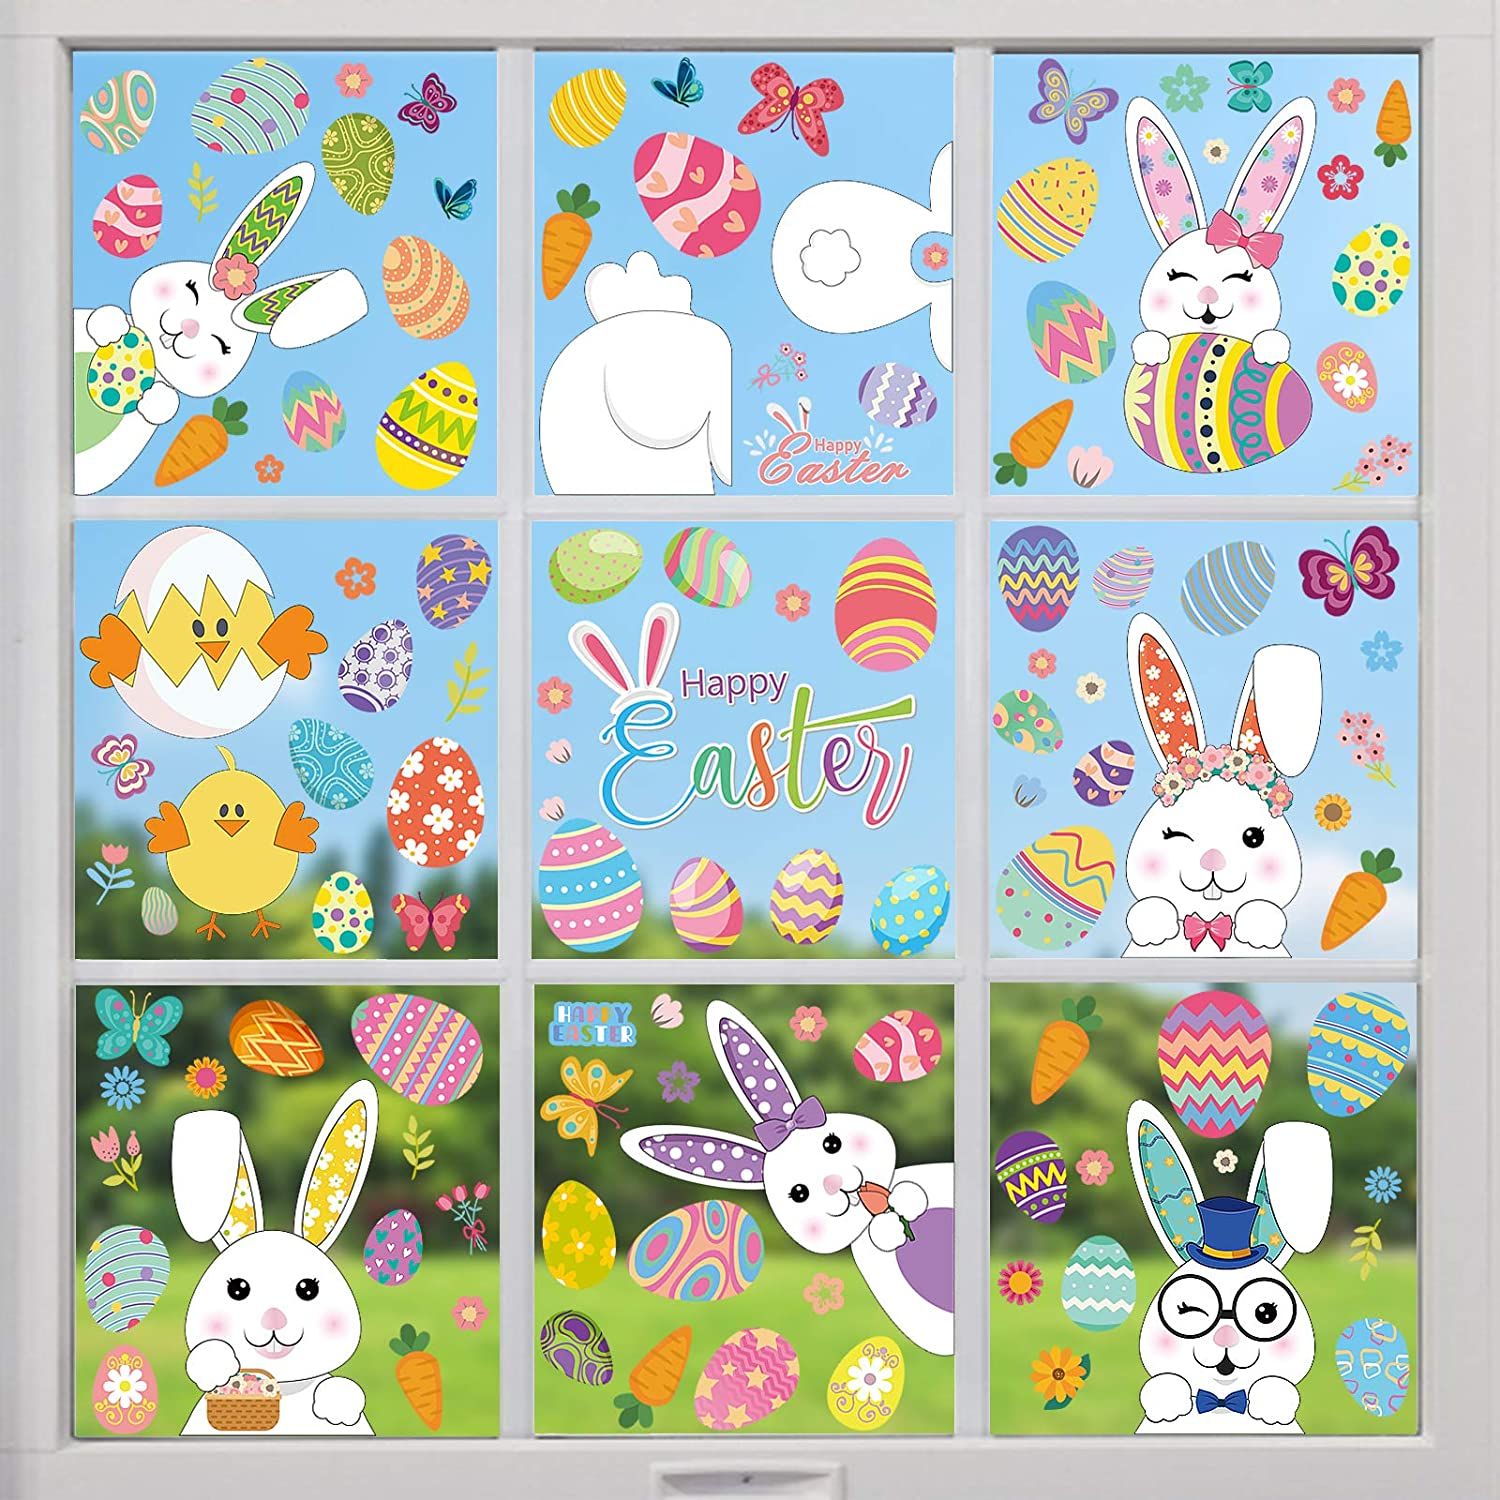 Outlet ☆ Free Shipping Easter High quality Window Stickers for Day 9 121 She Decorations PCS